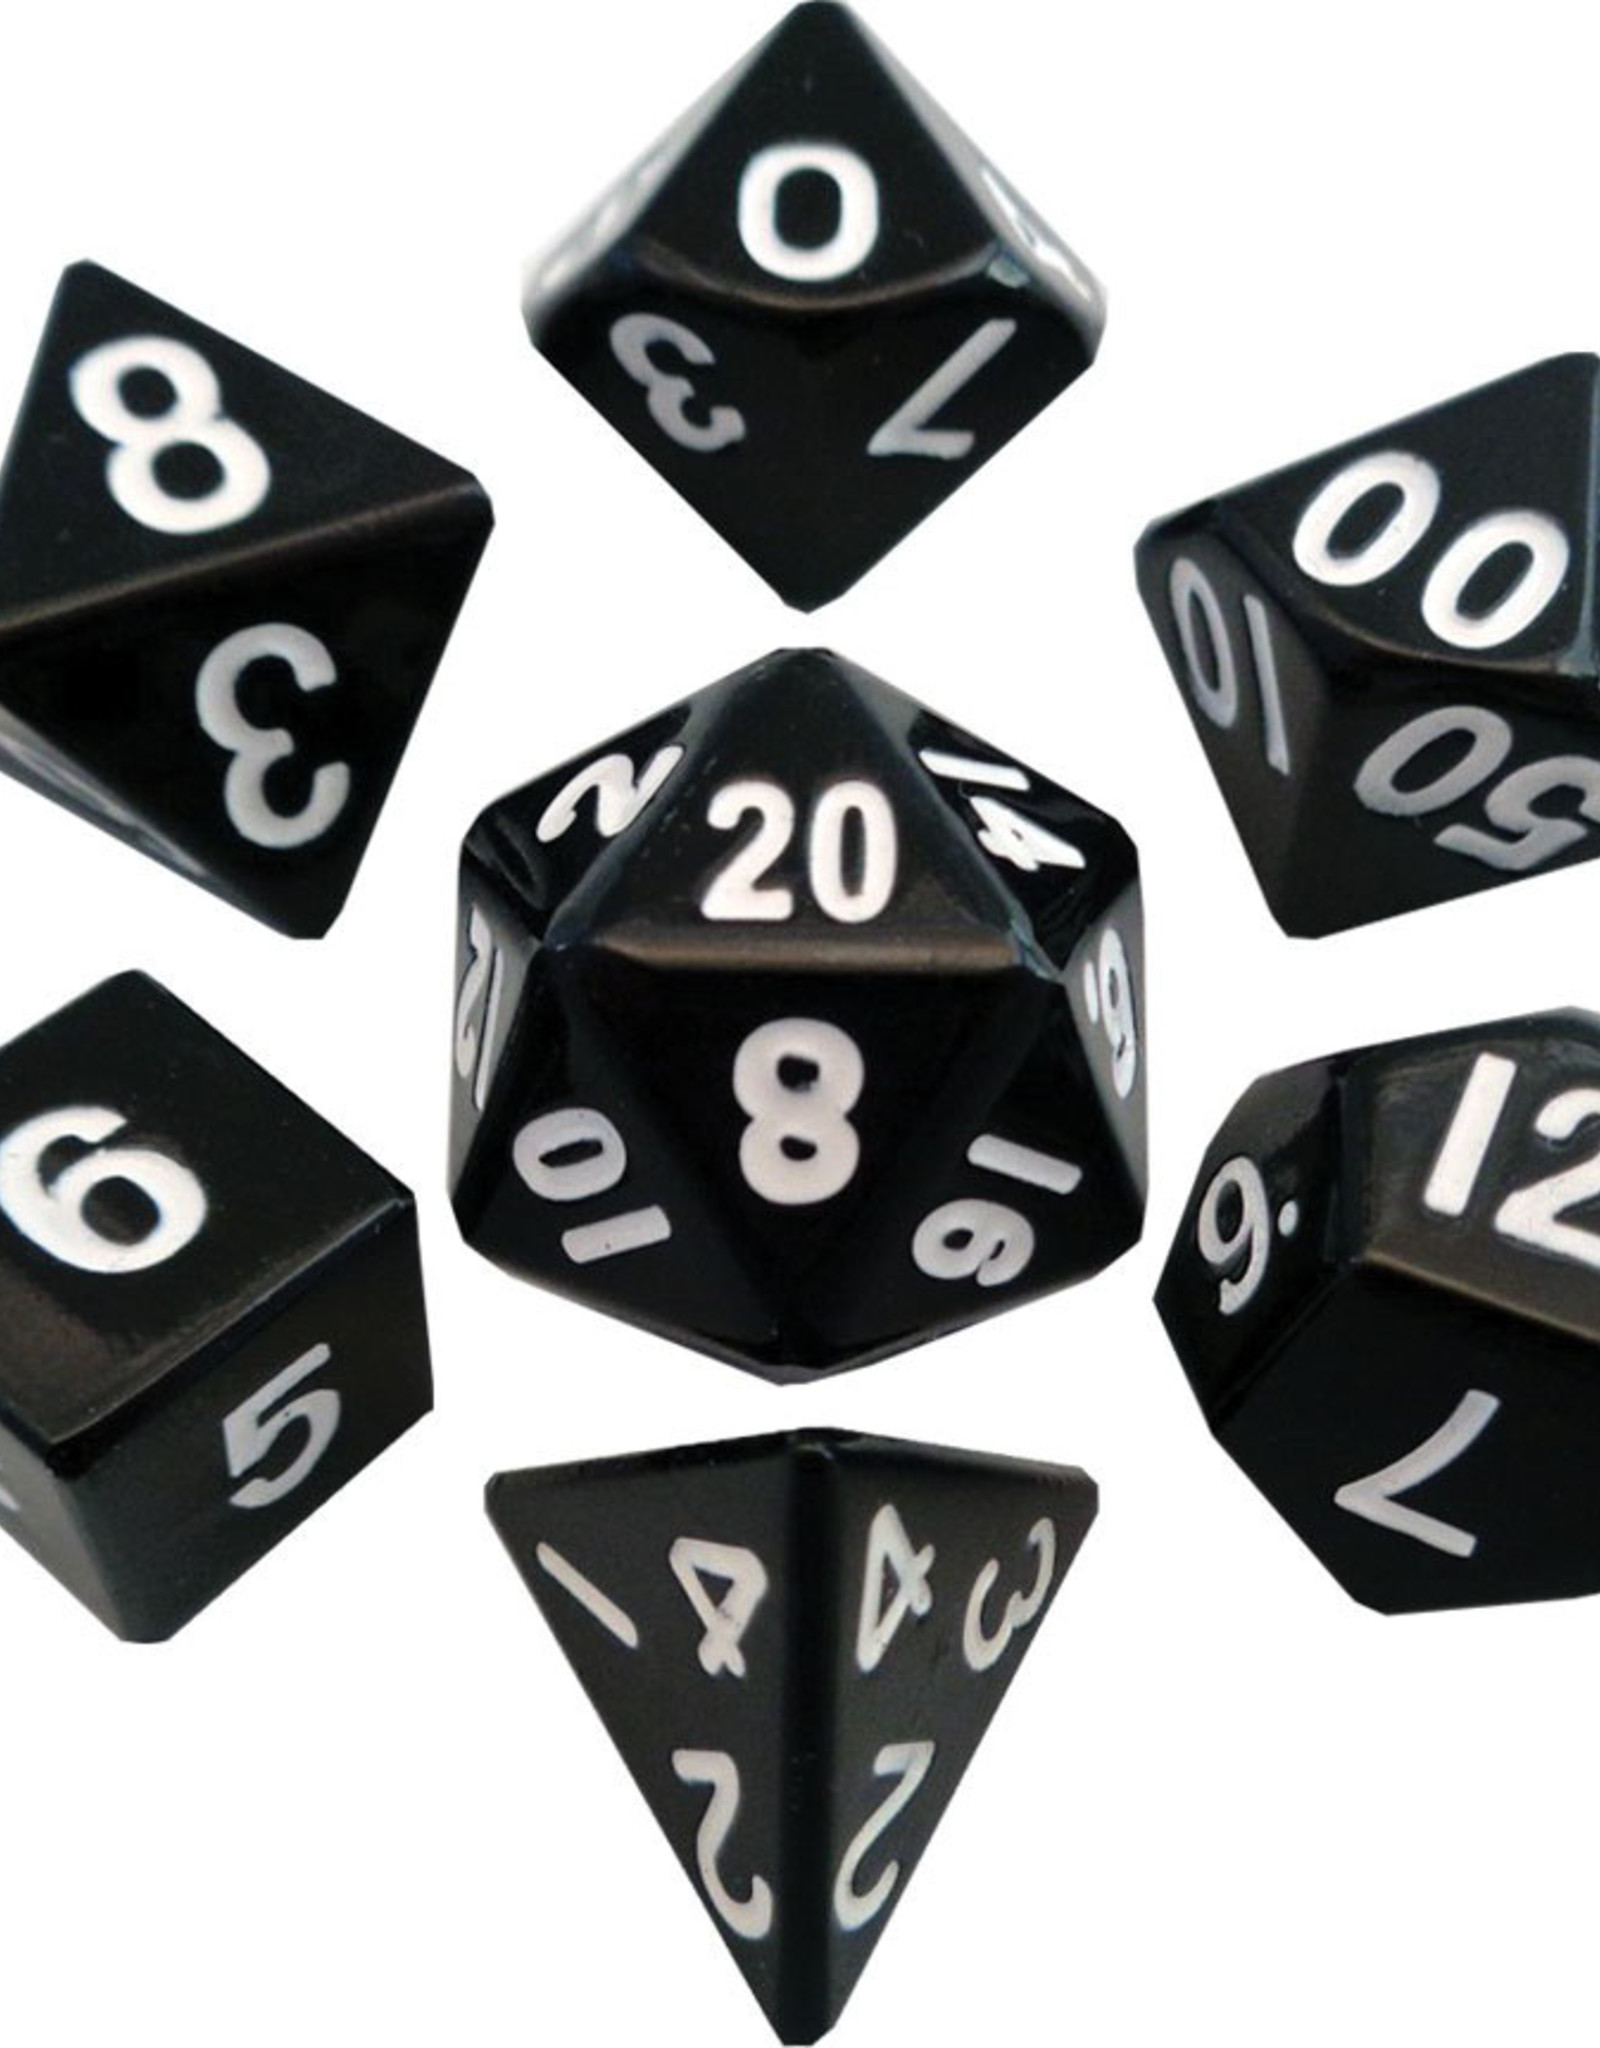 Metallic Dice Games Polyhedral Dice Set: 16mm Black Metal